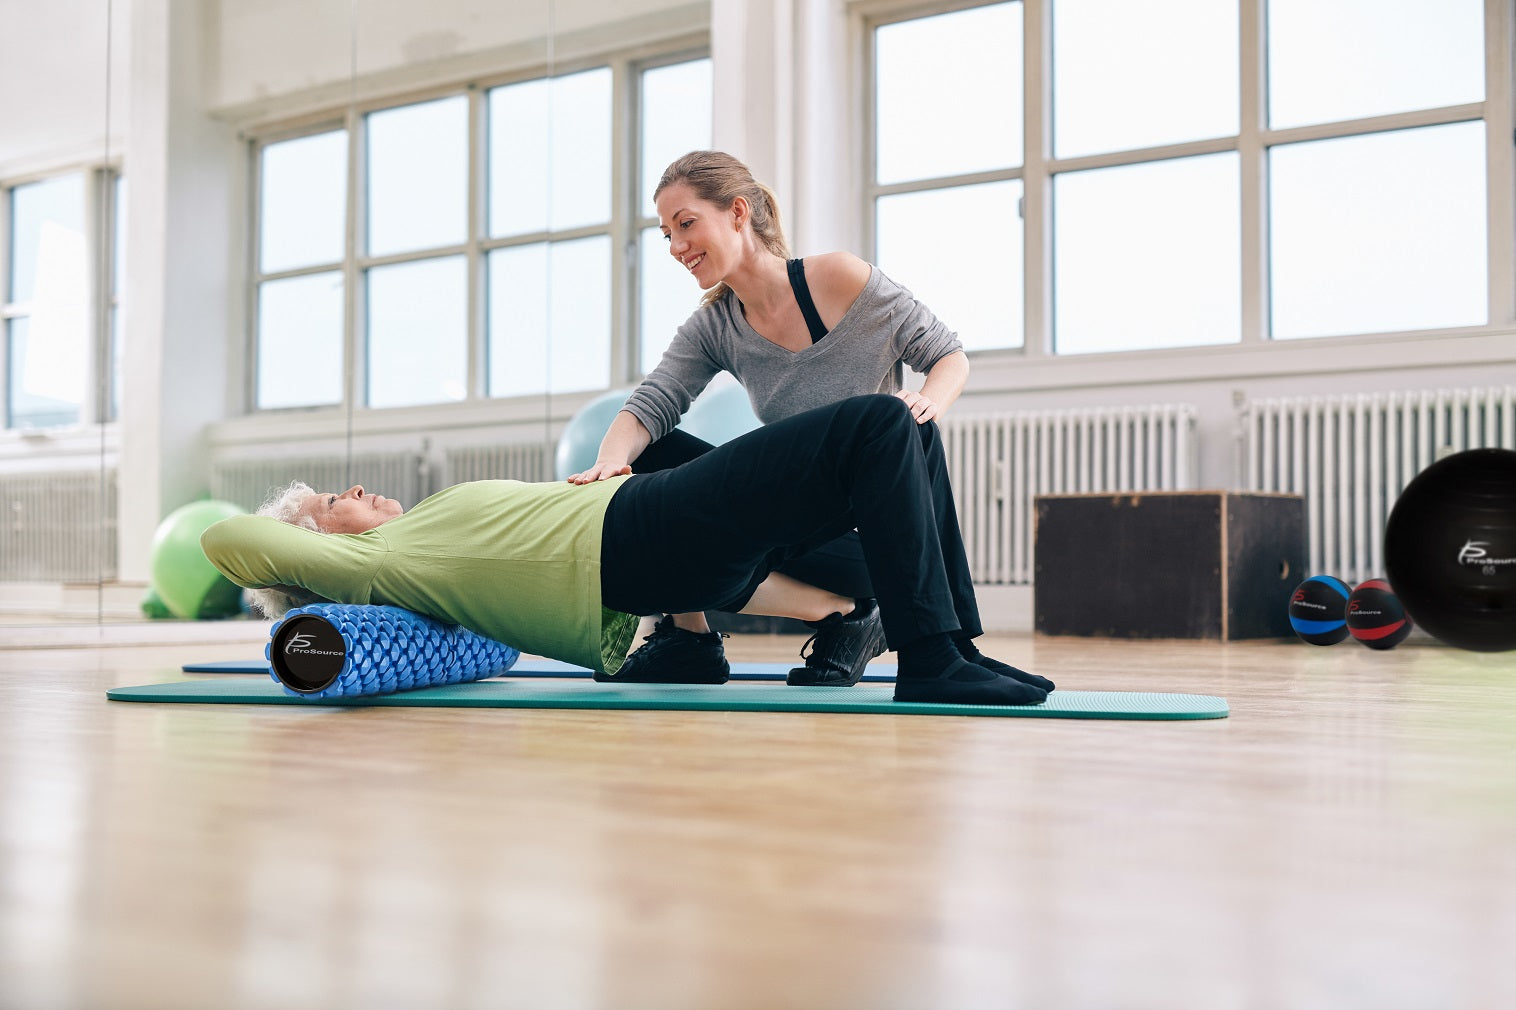 elderly woman stretching on prosource hexa 2-in-1 foam roller with her trainer